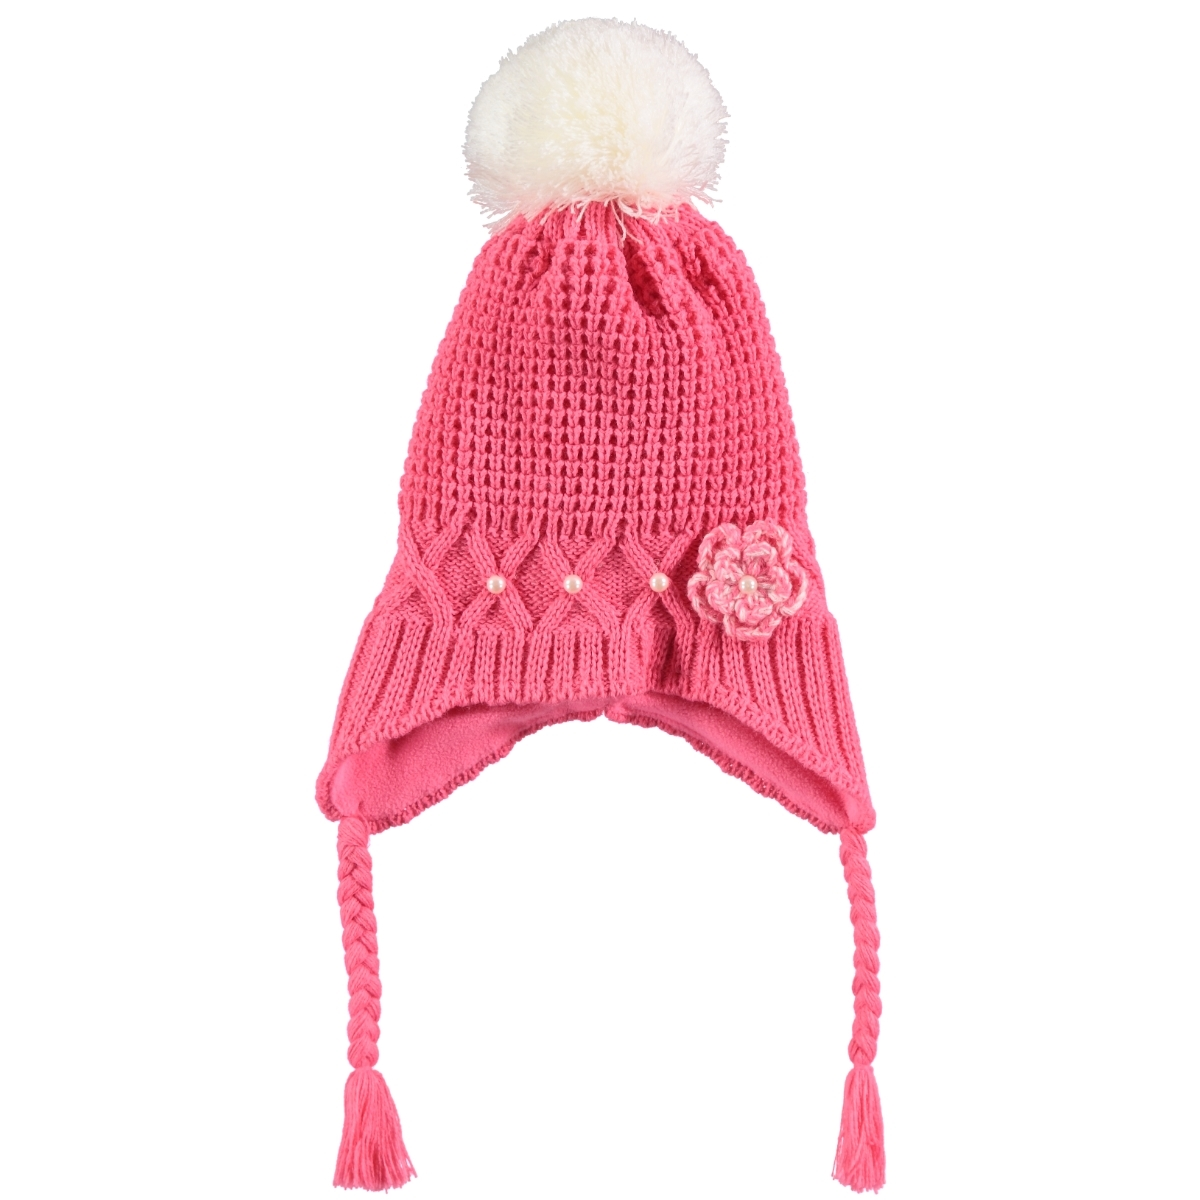 Kitti Tongue In Cheek Girl Boy Hat Ages 4-8